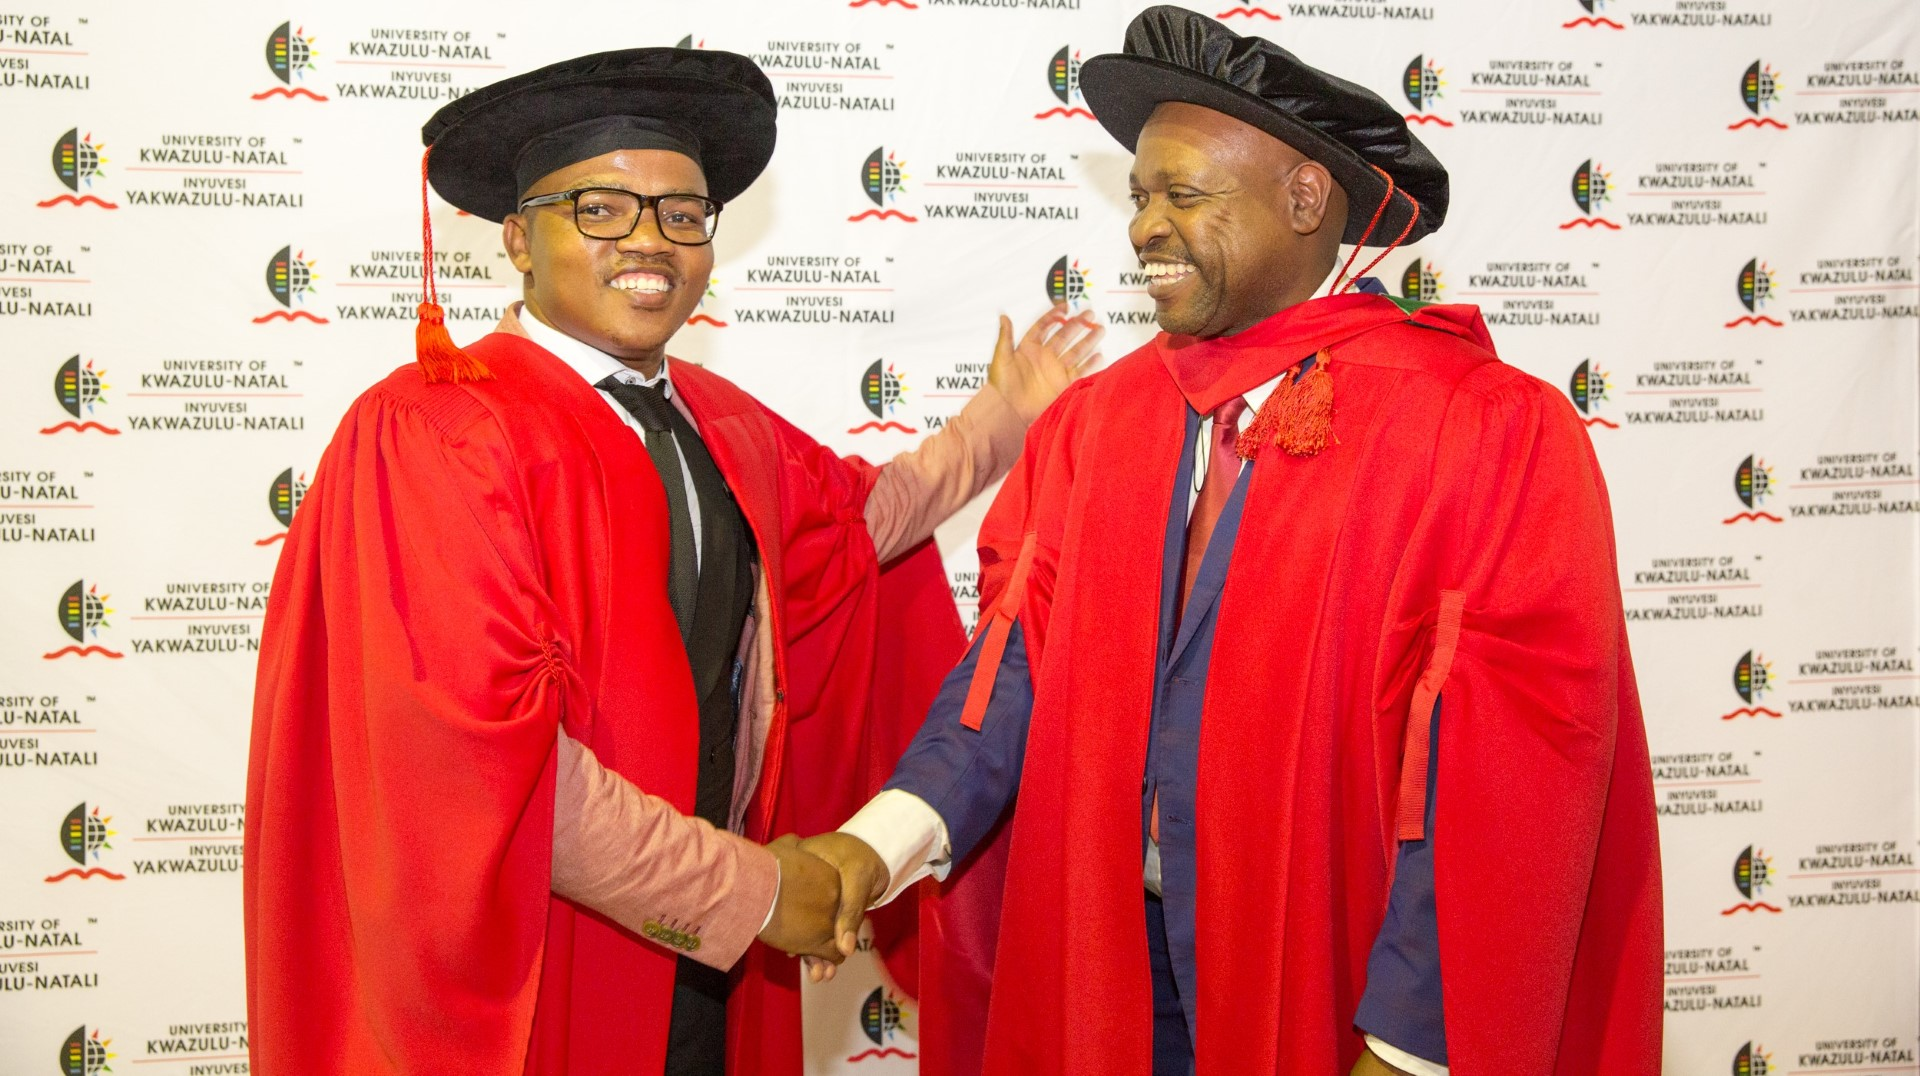 Supervisor Dr Phumlani Myende and his student Dr Themba Mkhize. Supervisor Dr Phumlani Myende and his student Dr Themba Mkhize.